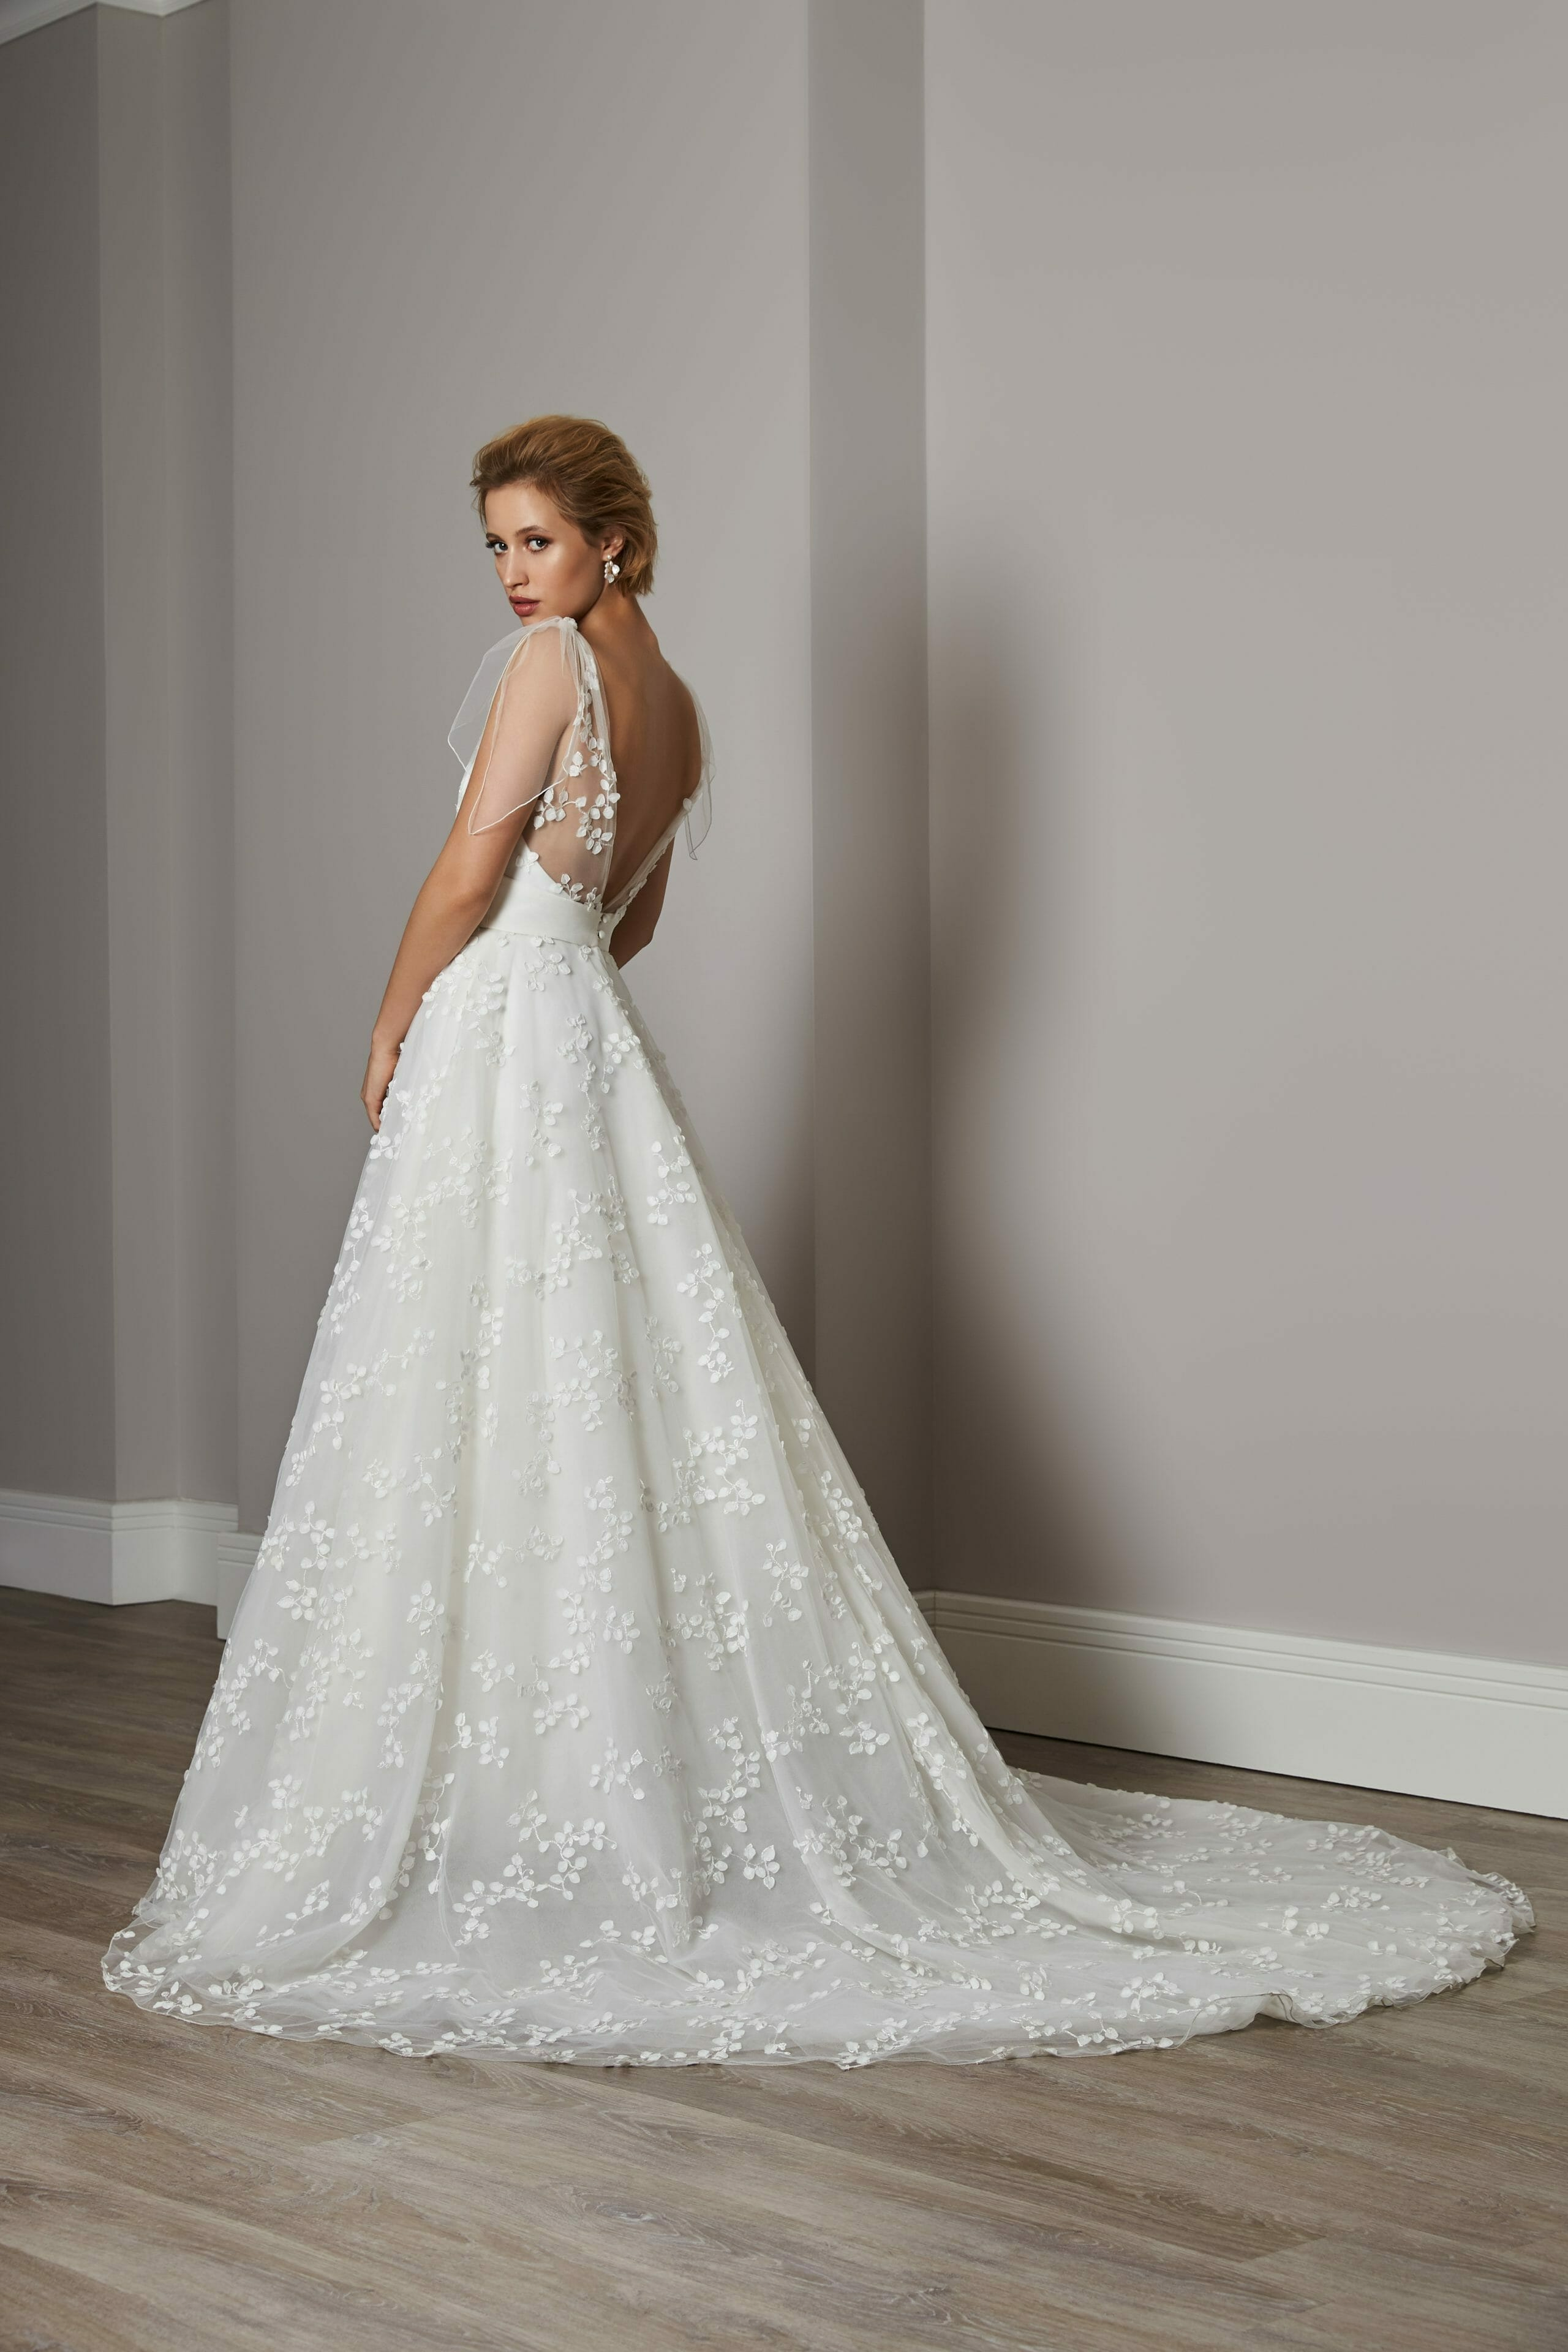 We are proud to be  supporting and championing British bridal designers